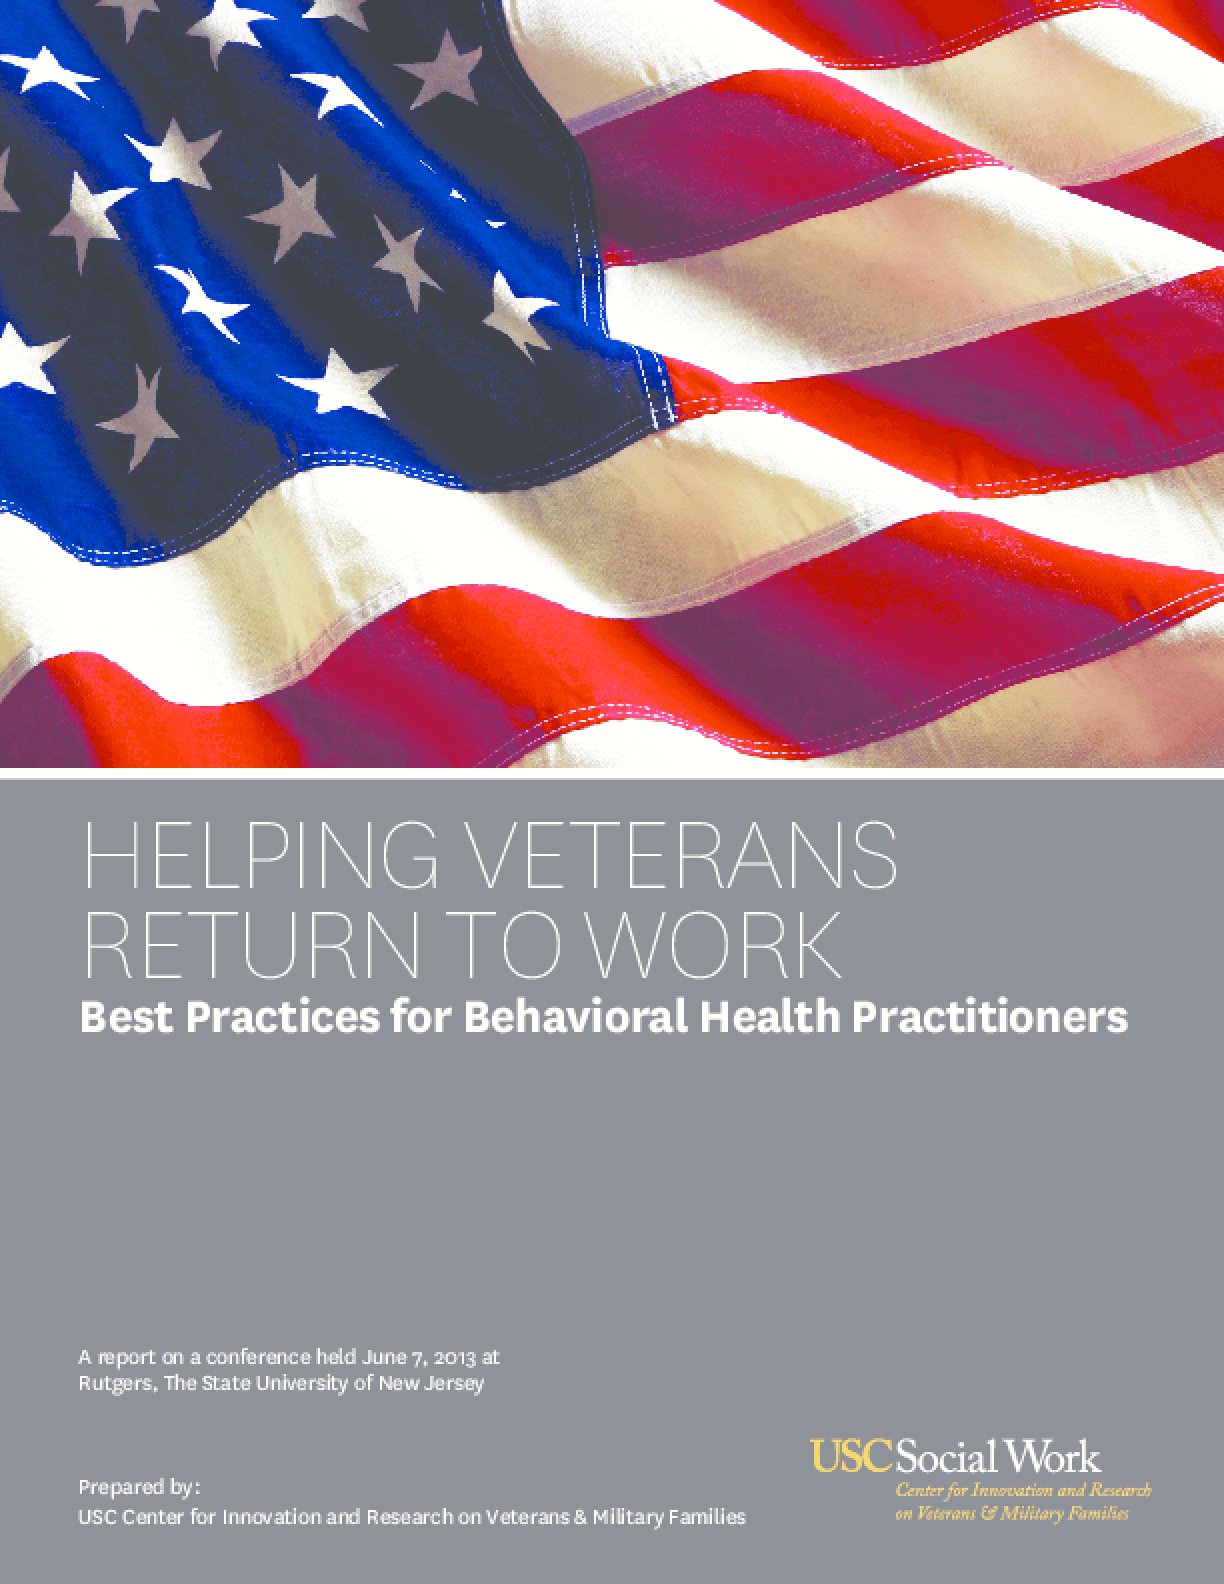 Helping Veterans Return to Work: Best Practices for Behavioral Health Practitioners